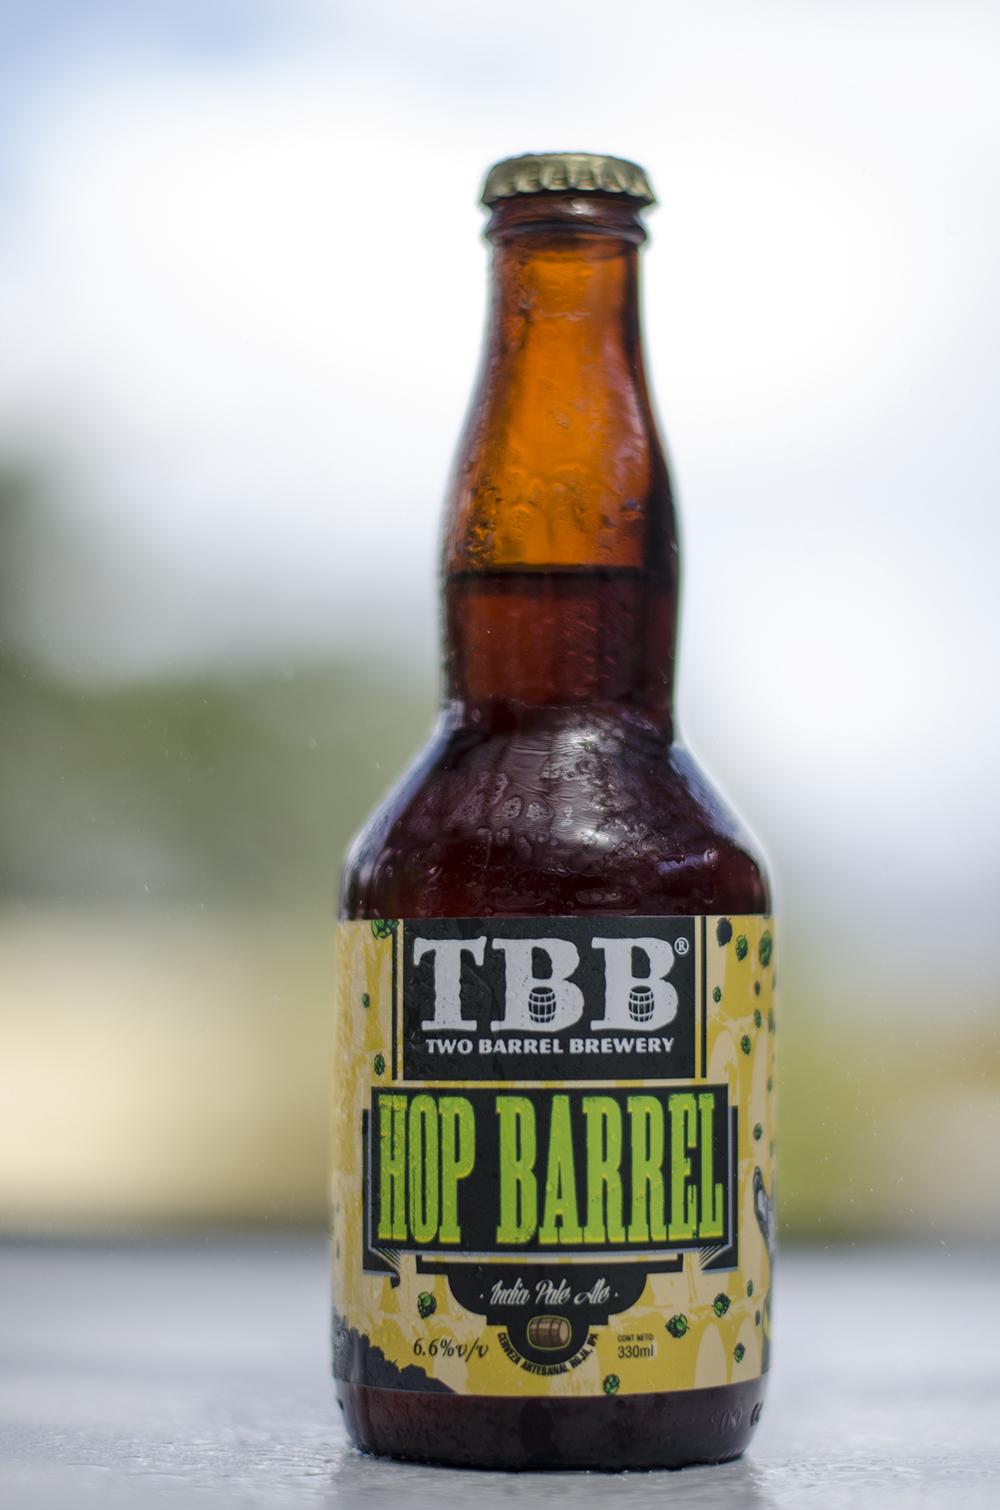 Two Barrel Brewery  - Hop Barrel  IPA  6,6%